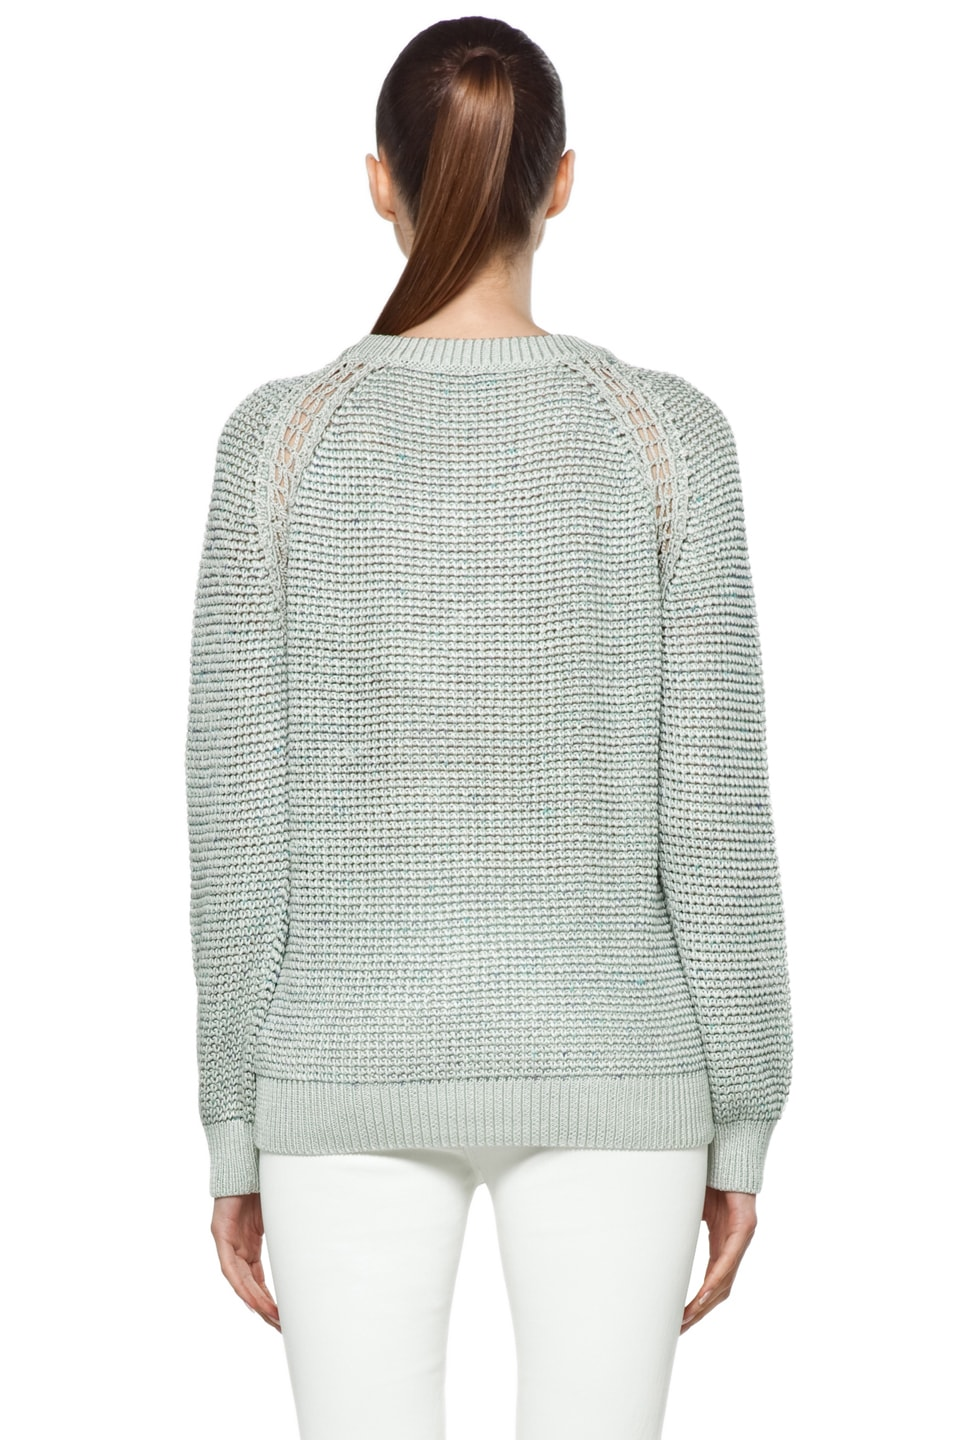 Image 4 of Theyskens' Theory Yigly Kyrt Sweater in Mint Green